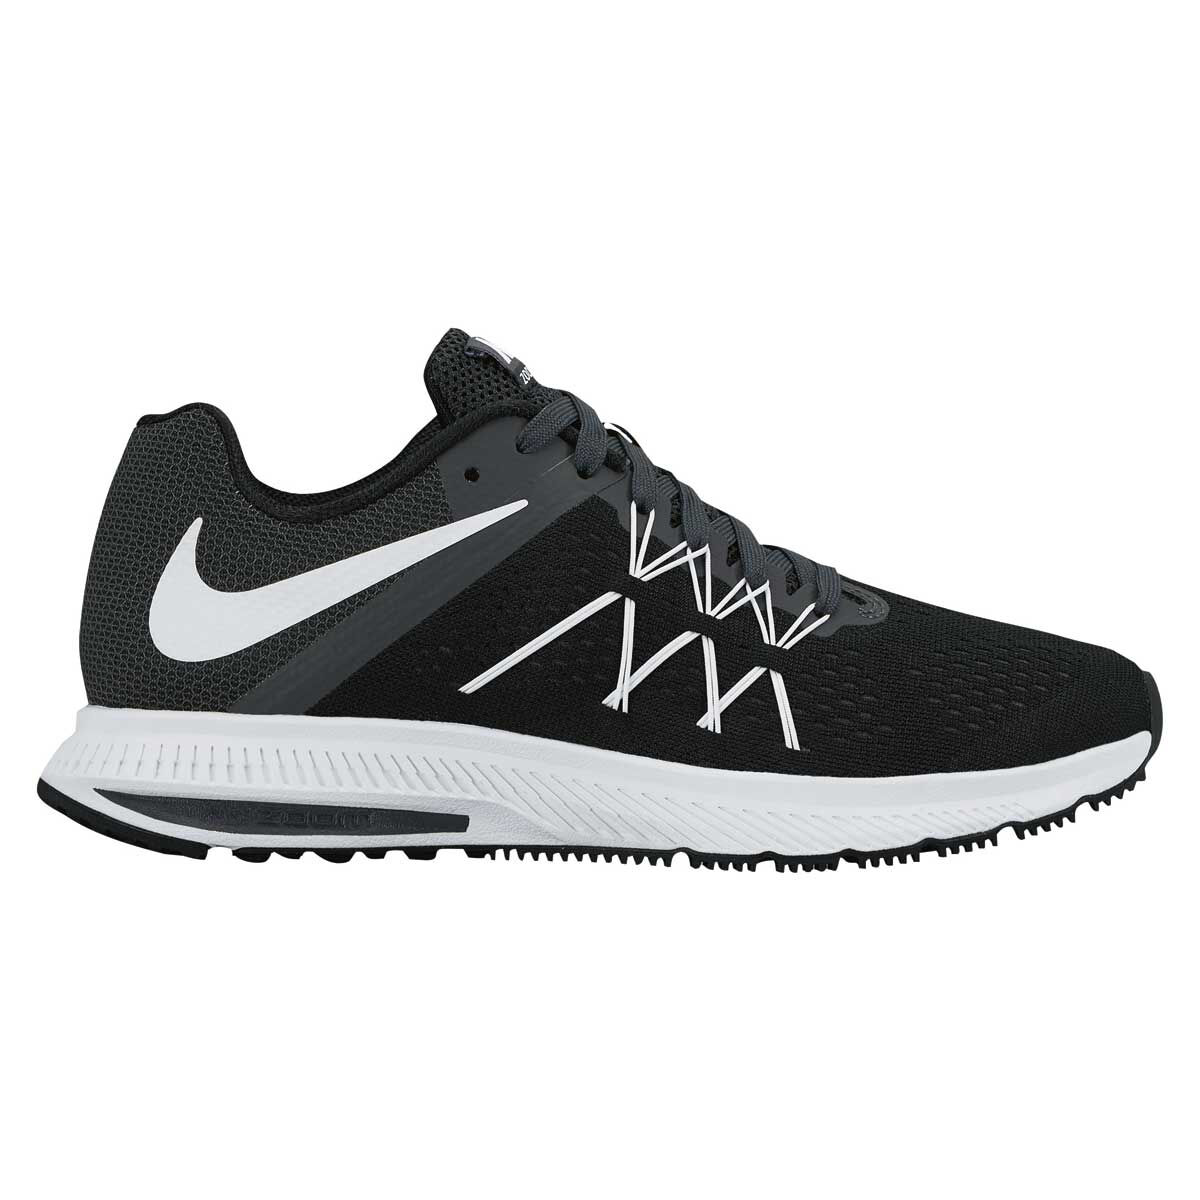 online retailer e9504 d8630 ... official store nike zoom winflo 3 womens running shoes blue black us 6  blue black 81616